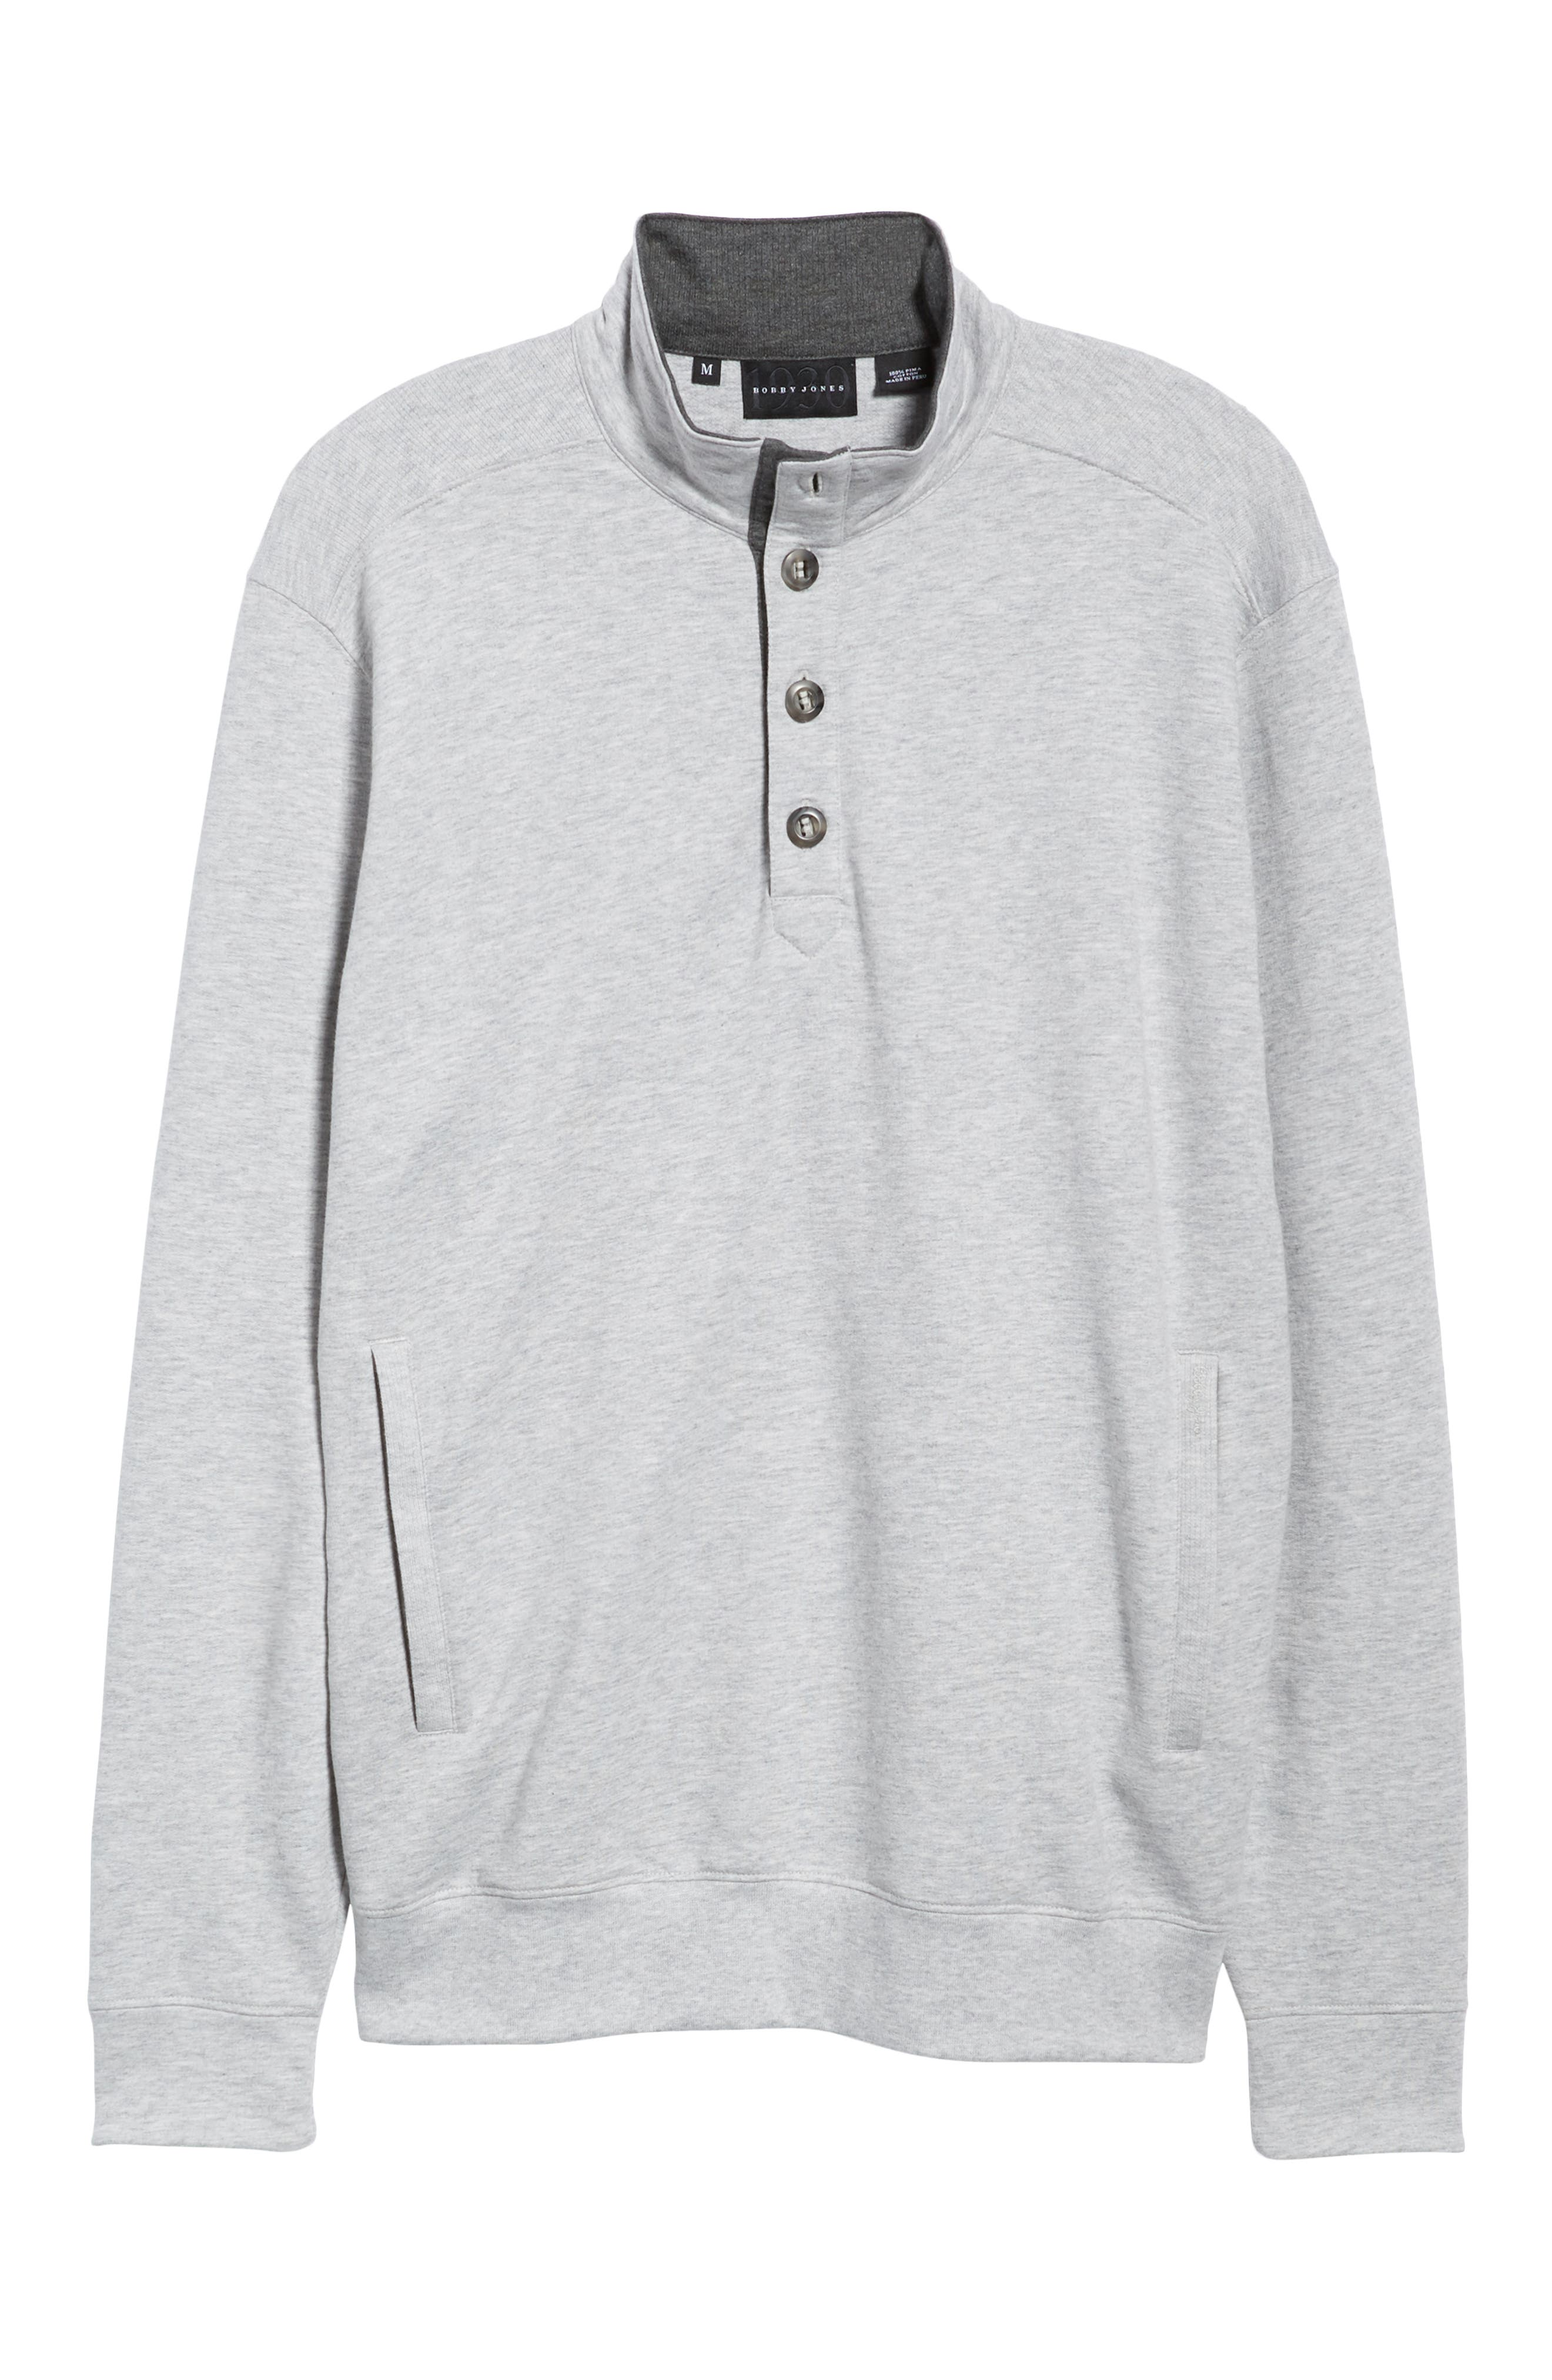 Clubhouse Pullover,                             Alternate thumbnail 6, color,                             GREY